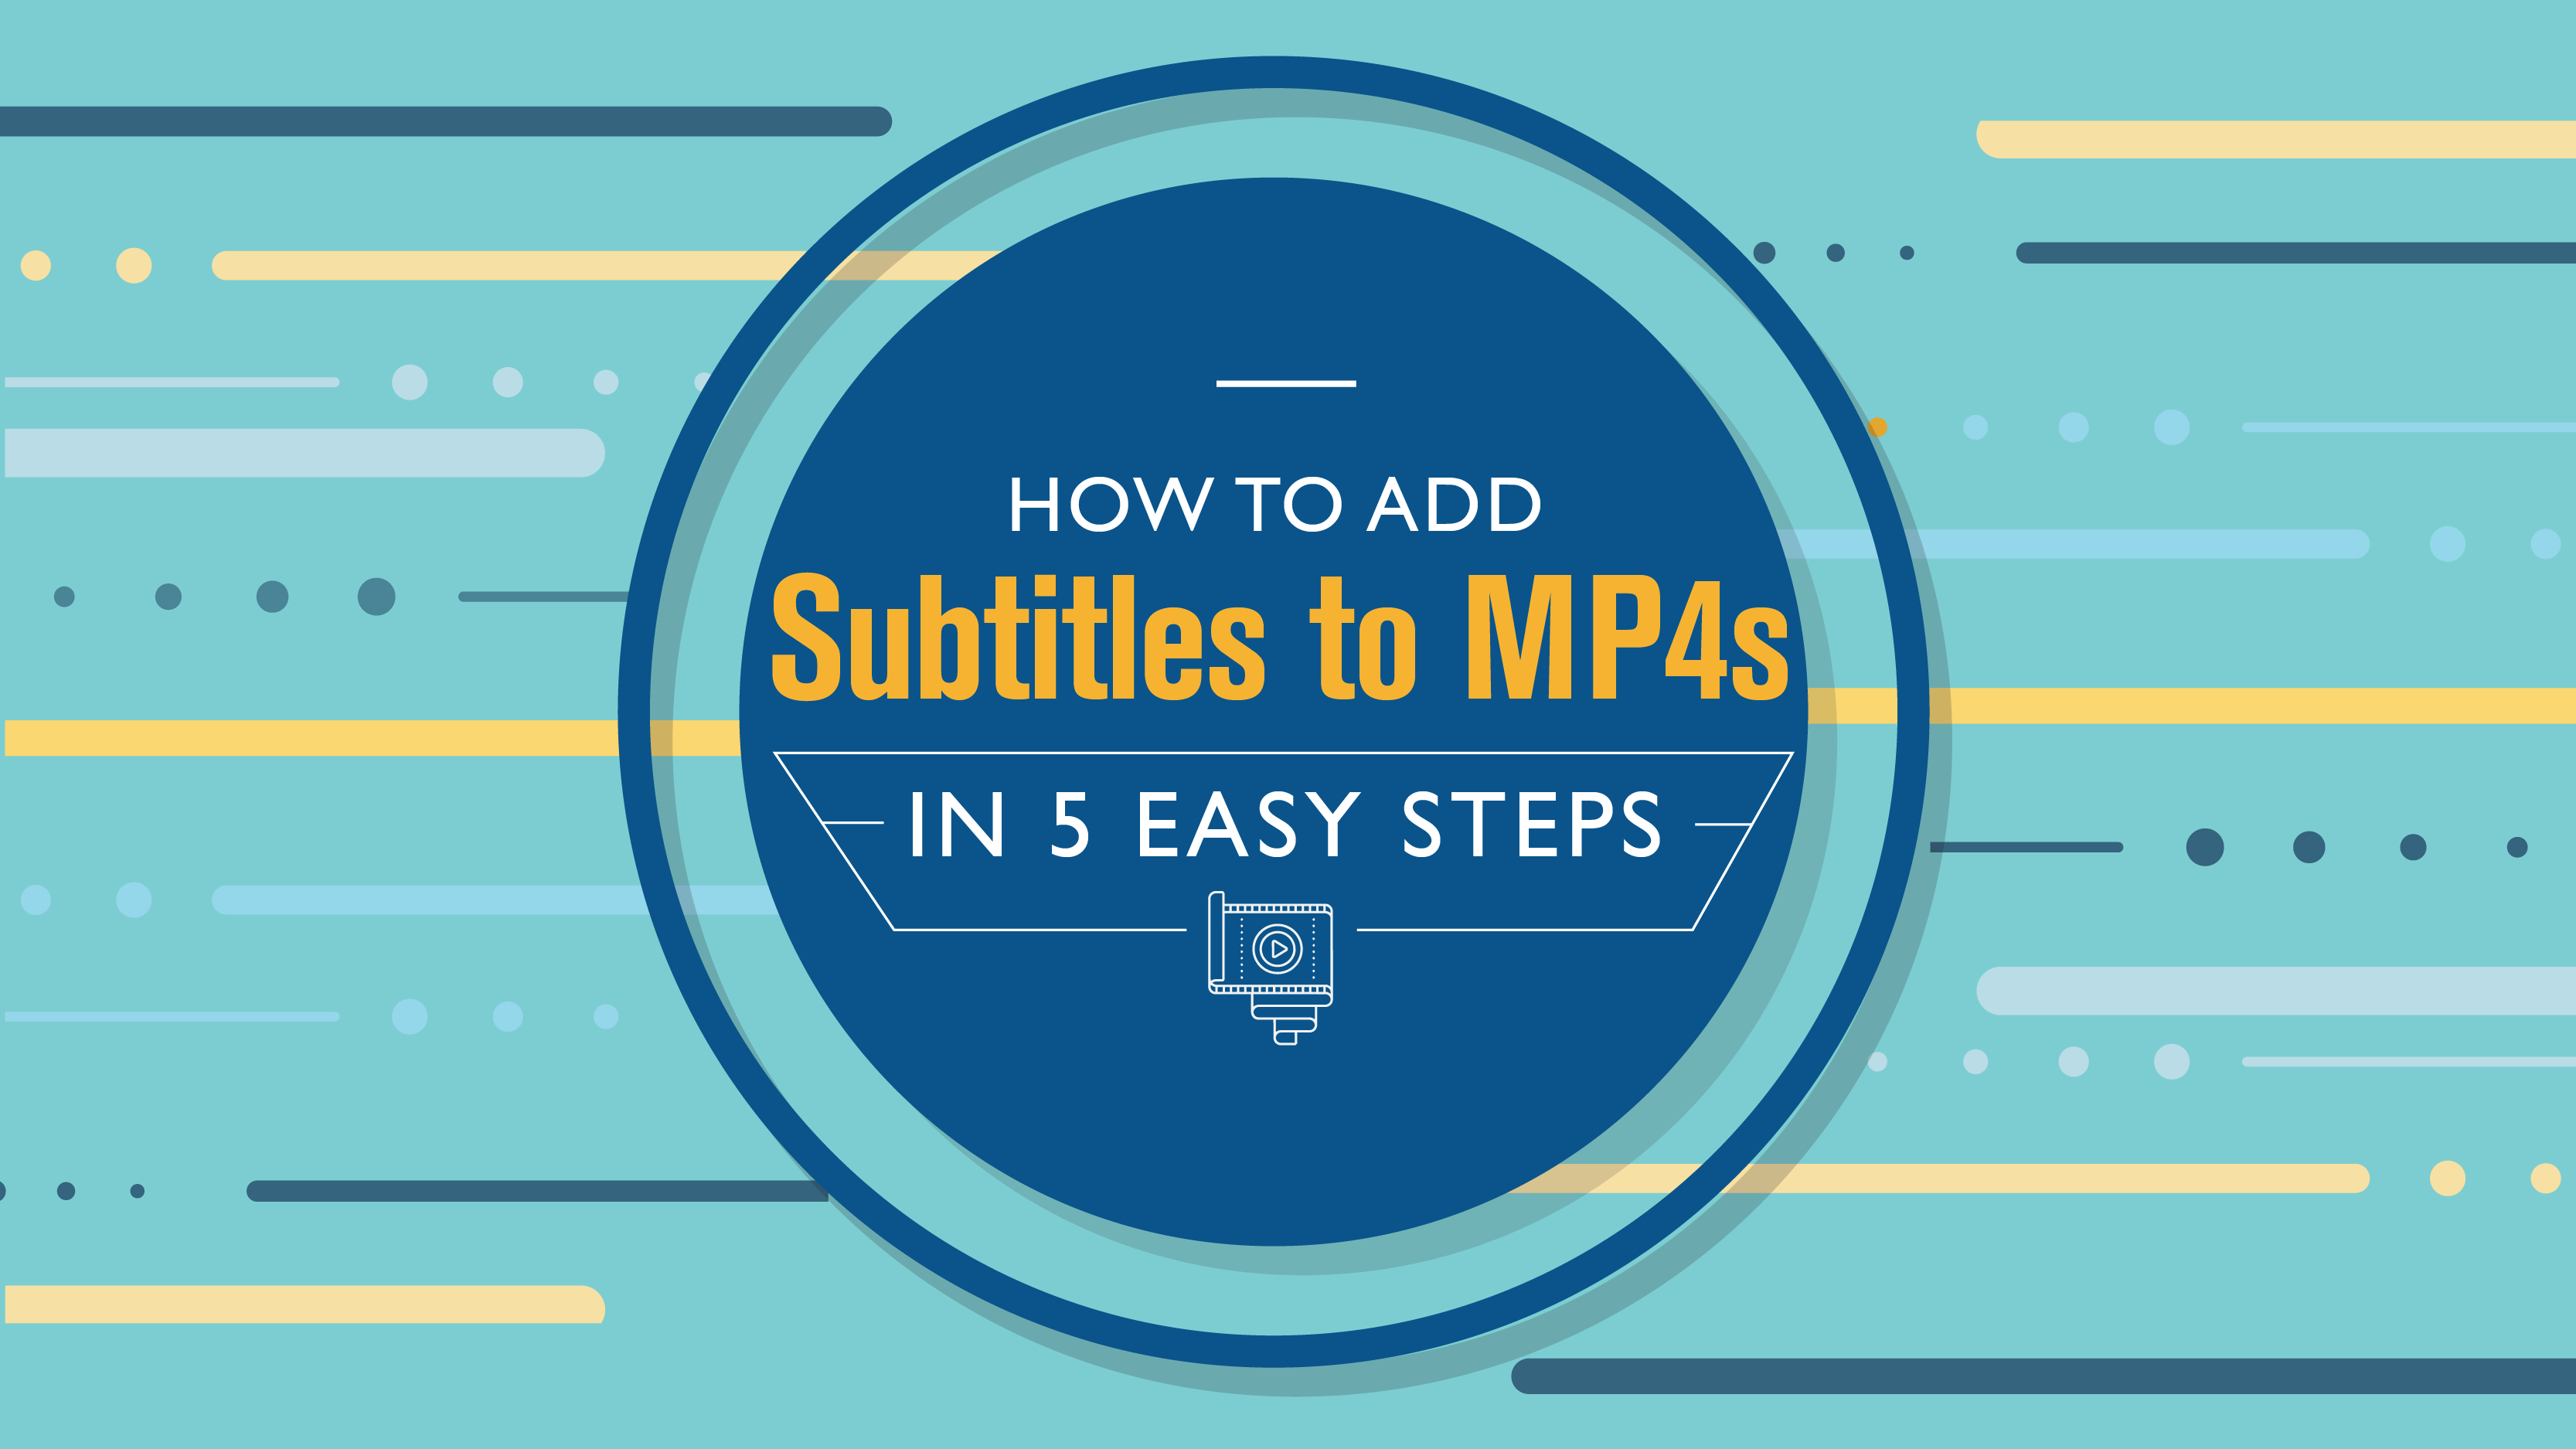 How to add subtitles to mp4s in 5 easy steps video uscreen adding subtitles to your videos files is a sure way to increase video shares by at least 15 this is especially true for videos on social media ccuart Image collections